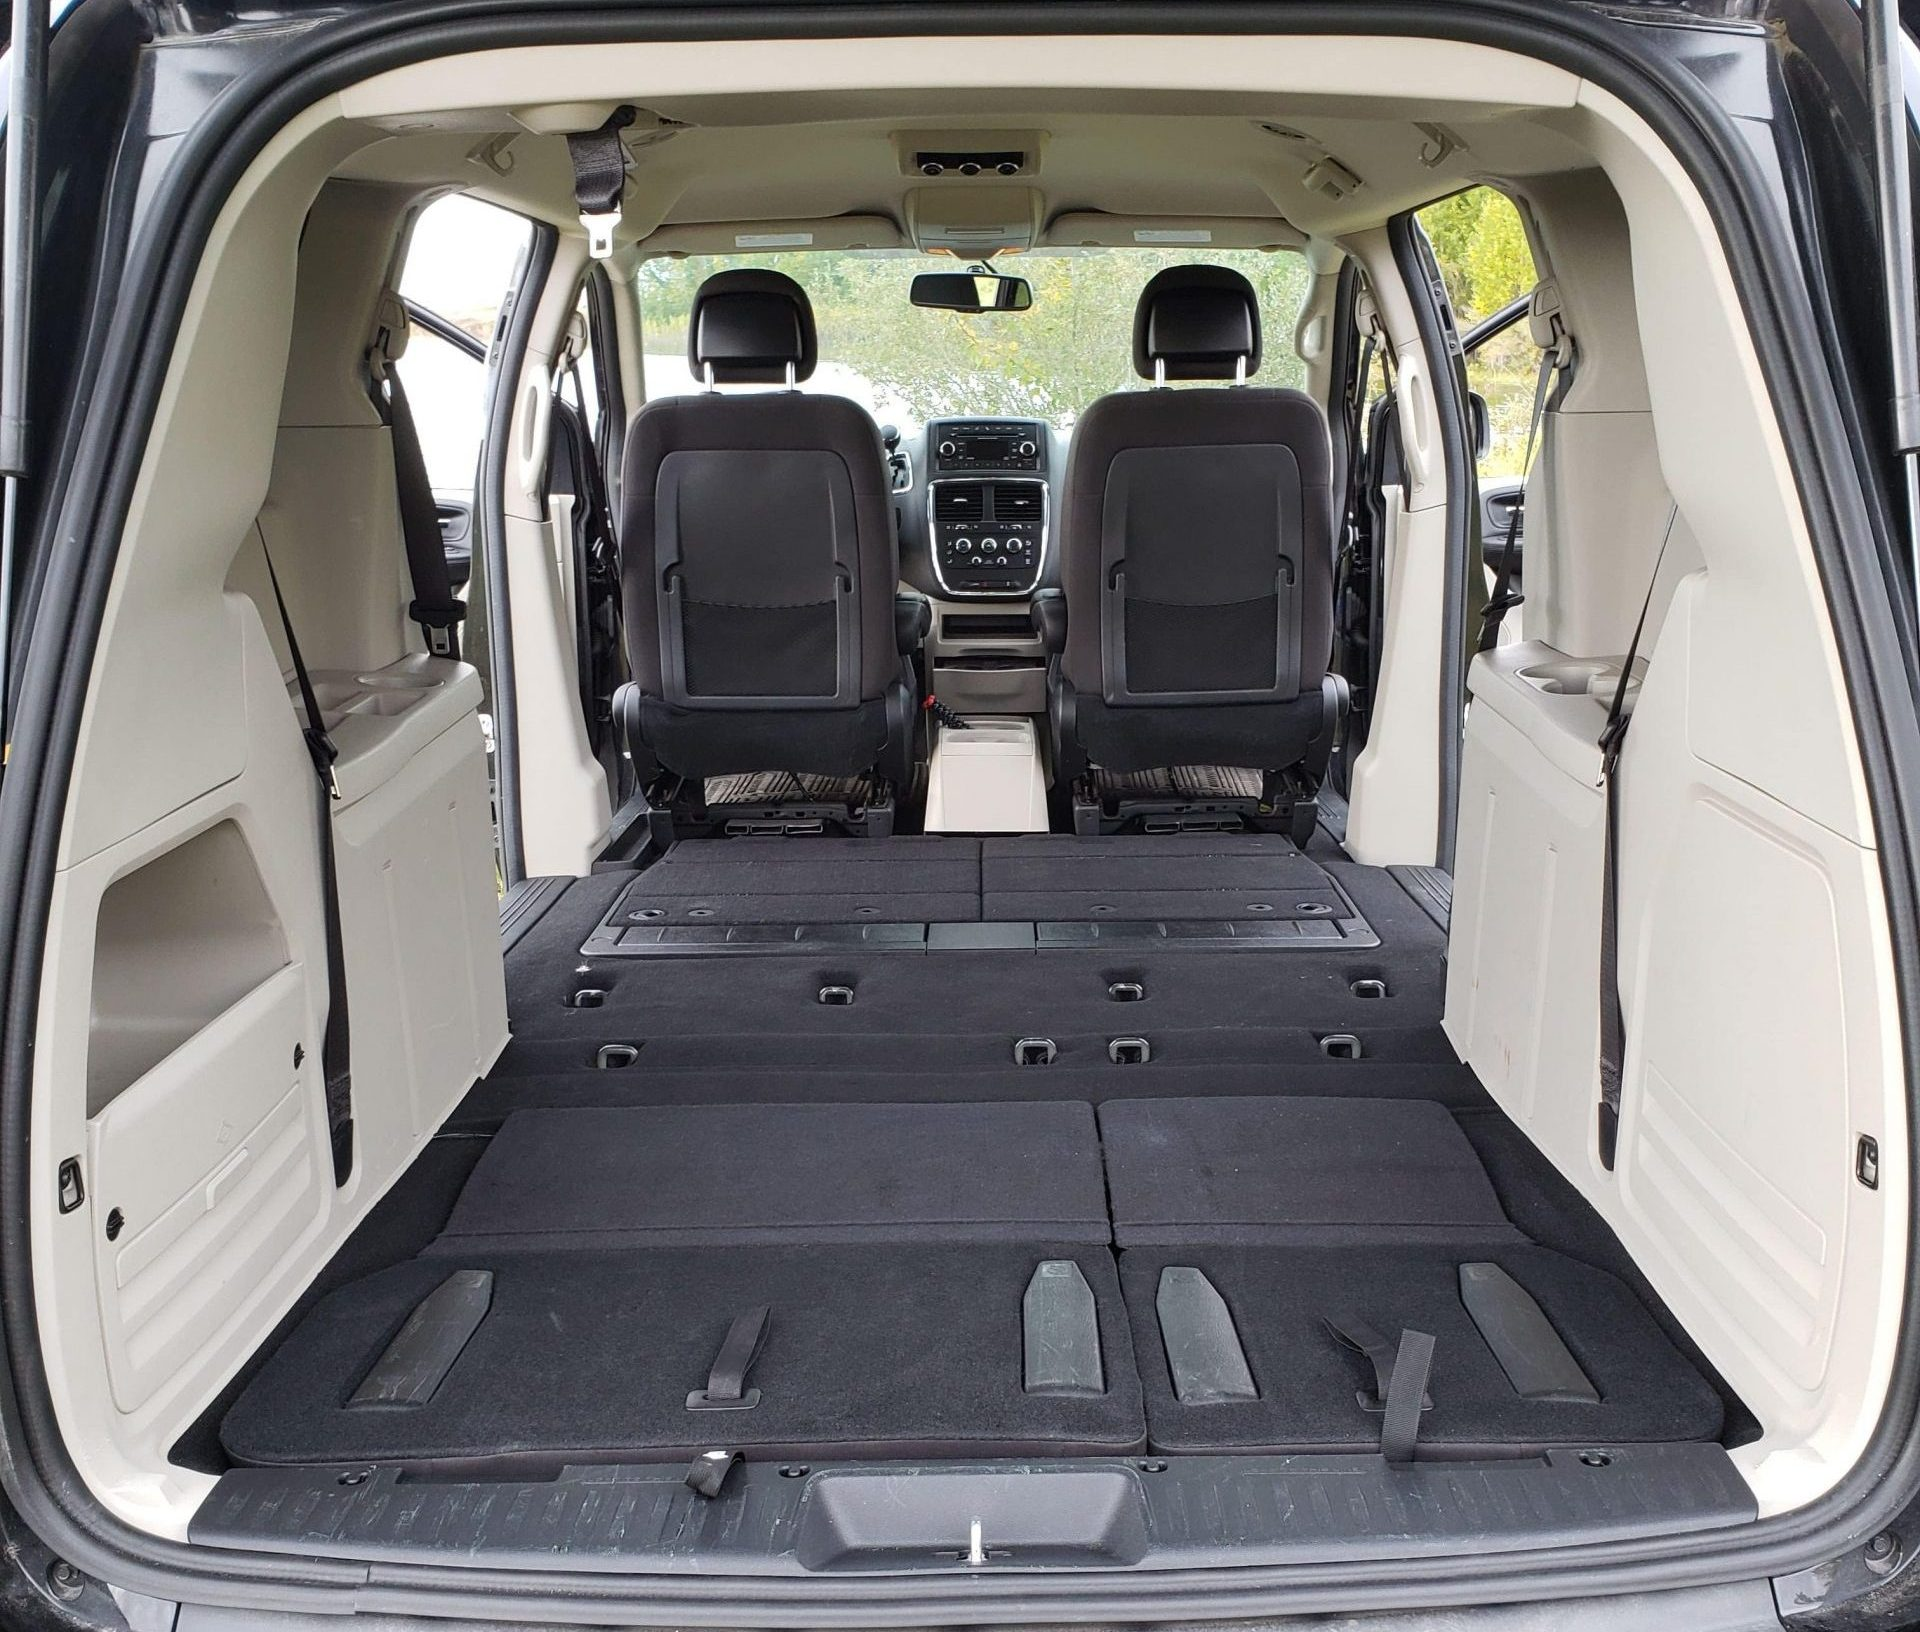 North Campervans Whatever You Want It To Be Van Interior Seats Stowed